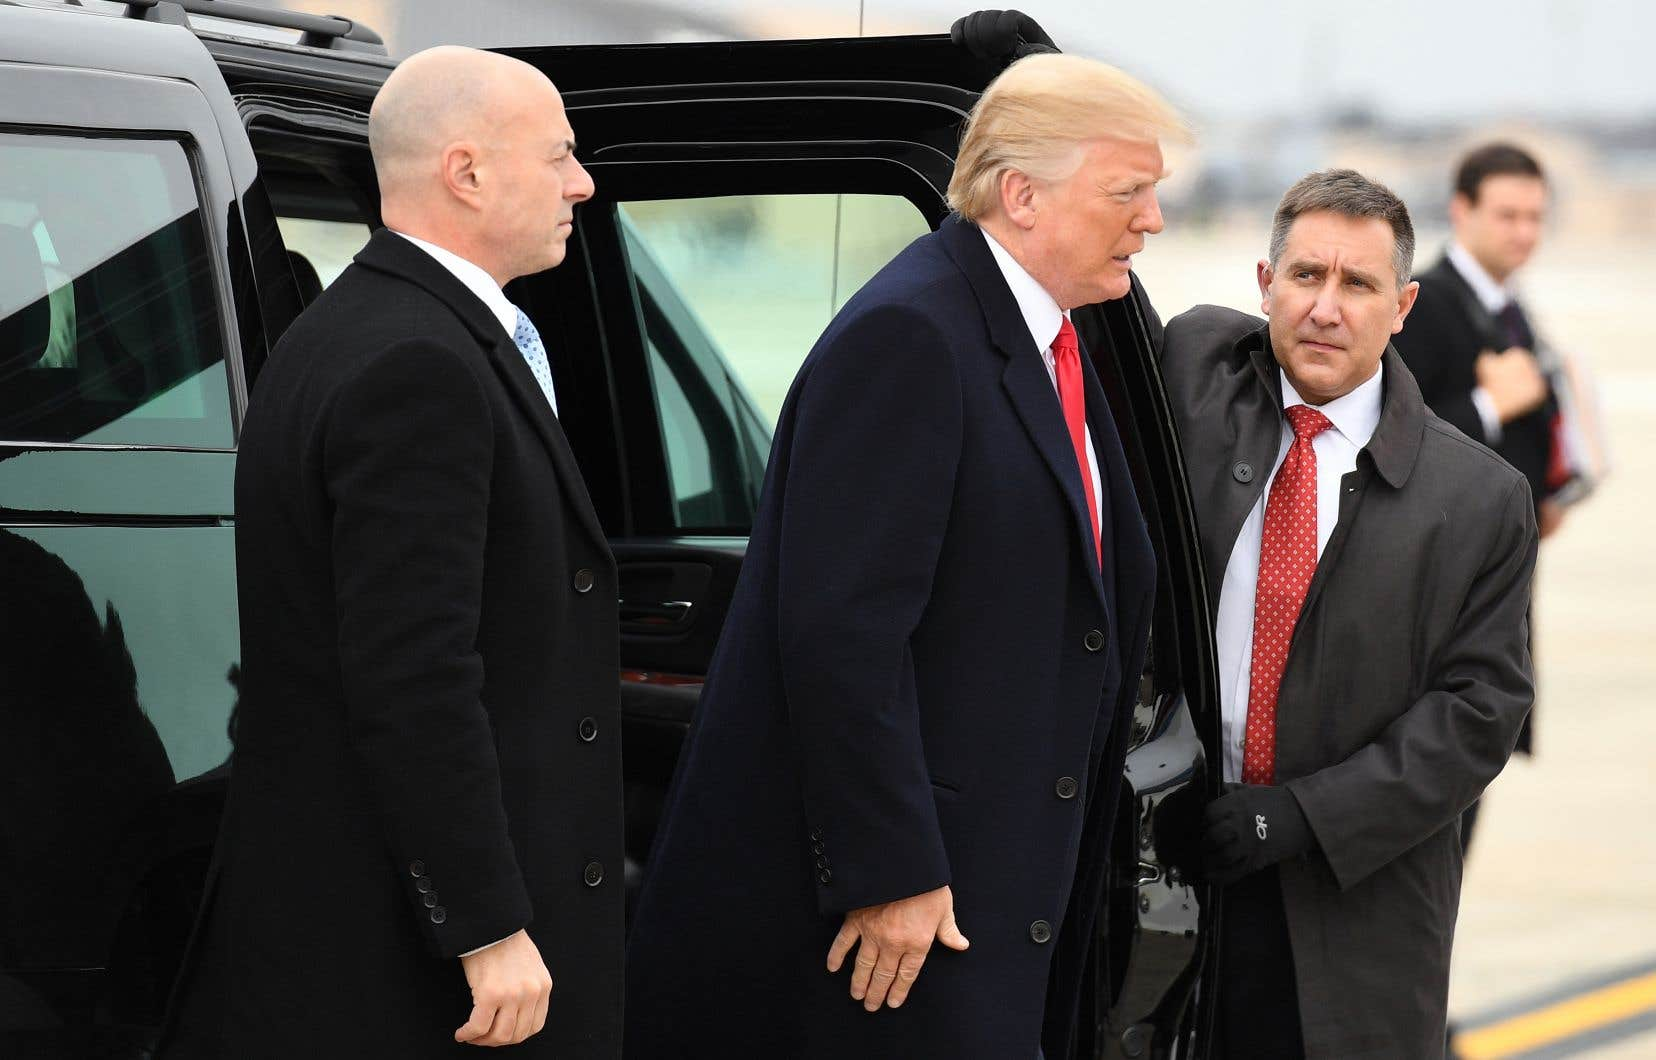 Donald Trump sur le point de monter à bord de l'avion présidentiel en direction de Nashville, au Tennesse, le 8 janvier